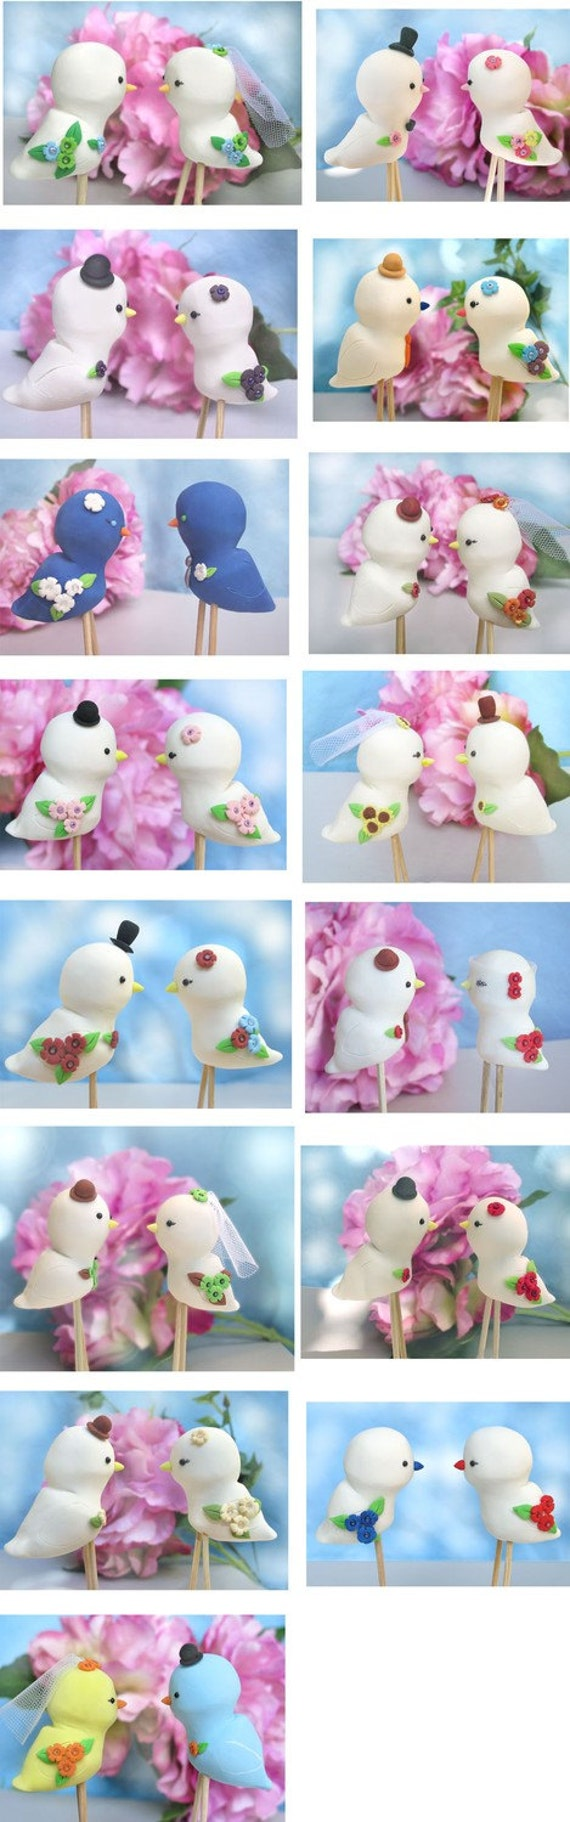 Unique Love birds wedding cake toppers - Promo price -Personalized details and colors